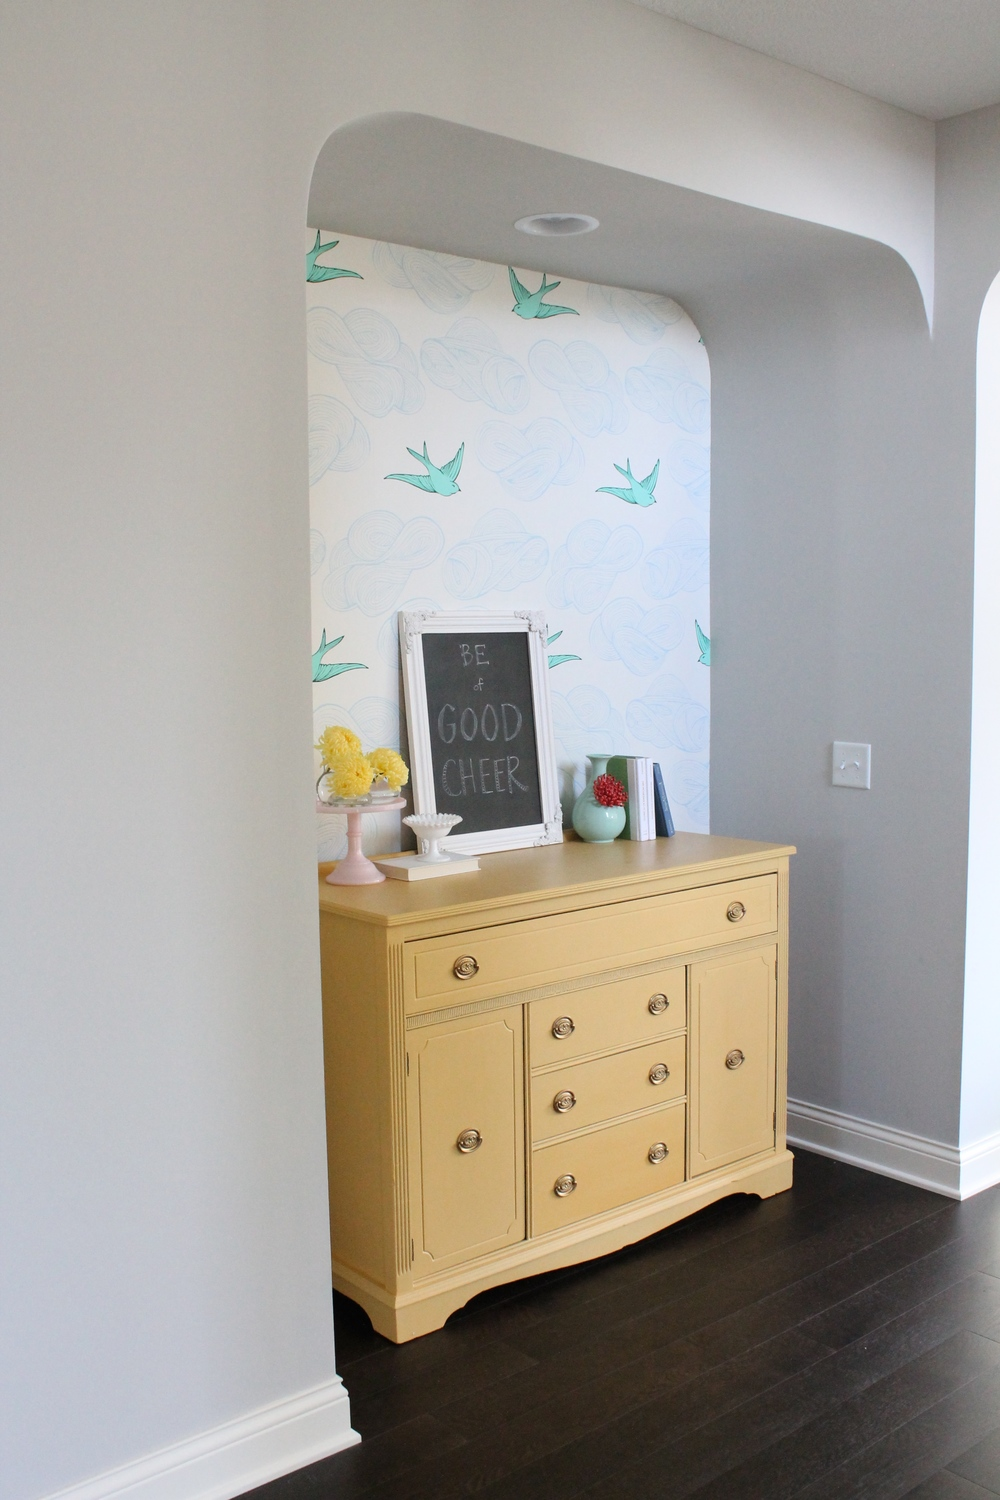 Cheerful Wallpapered Nook With Yellow Sideboard